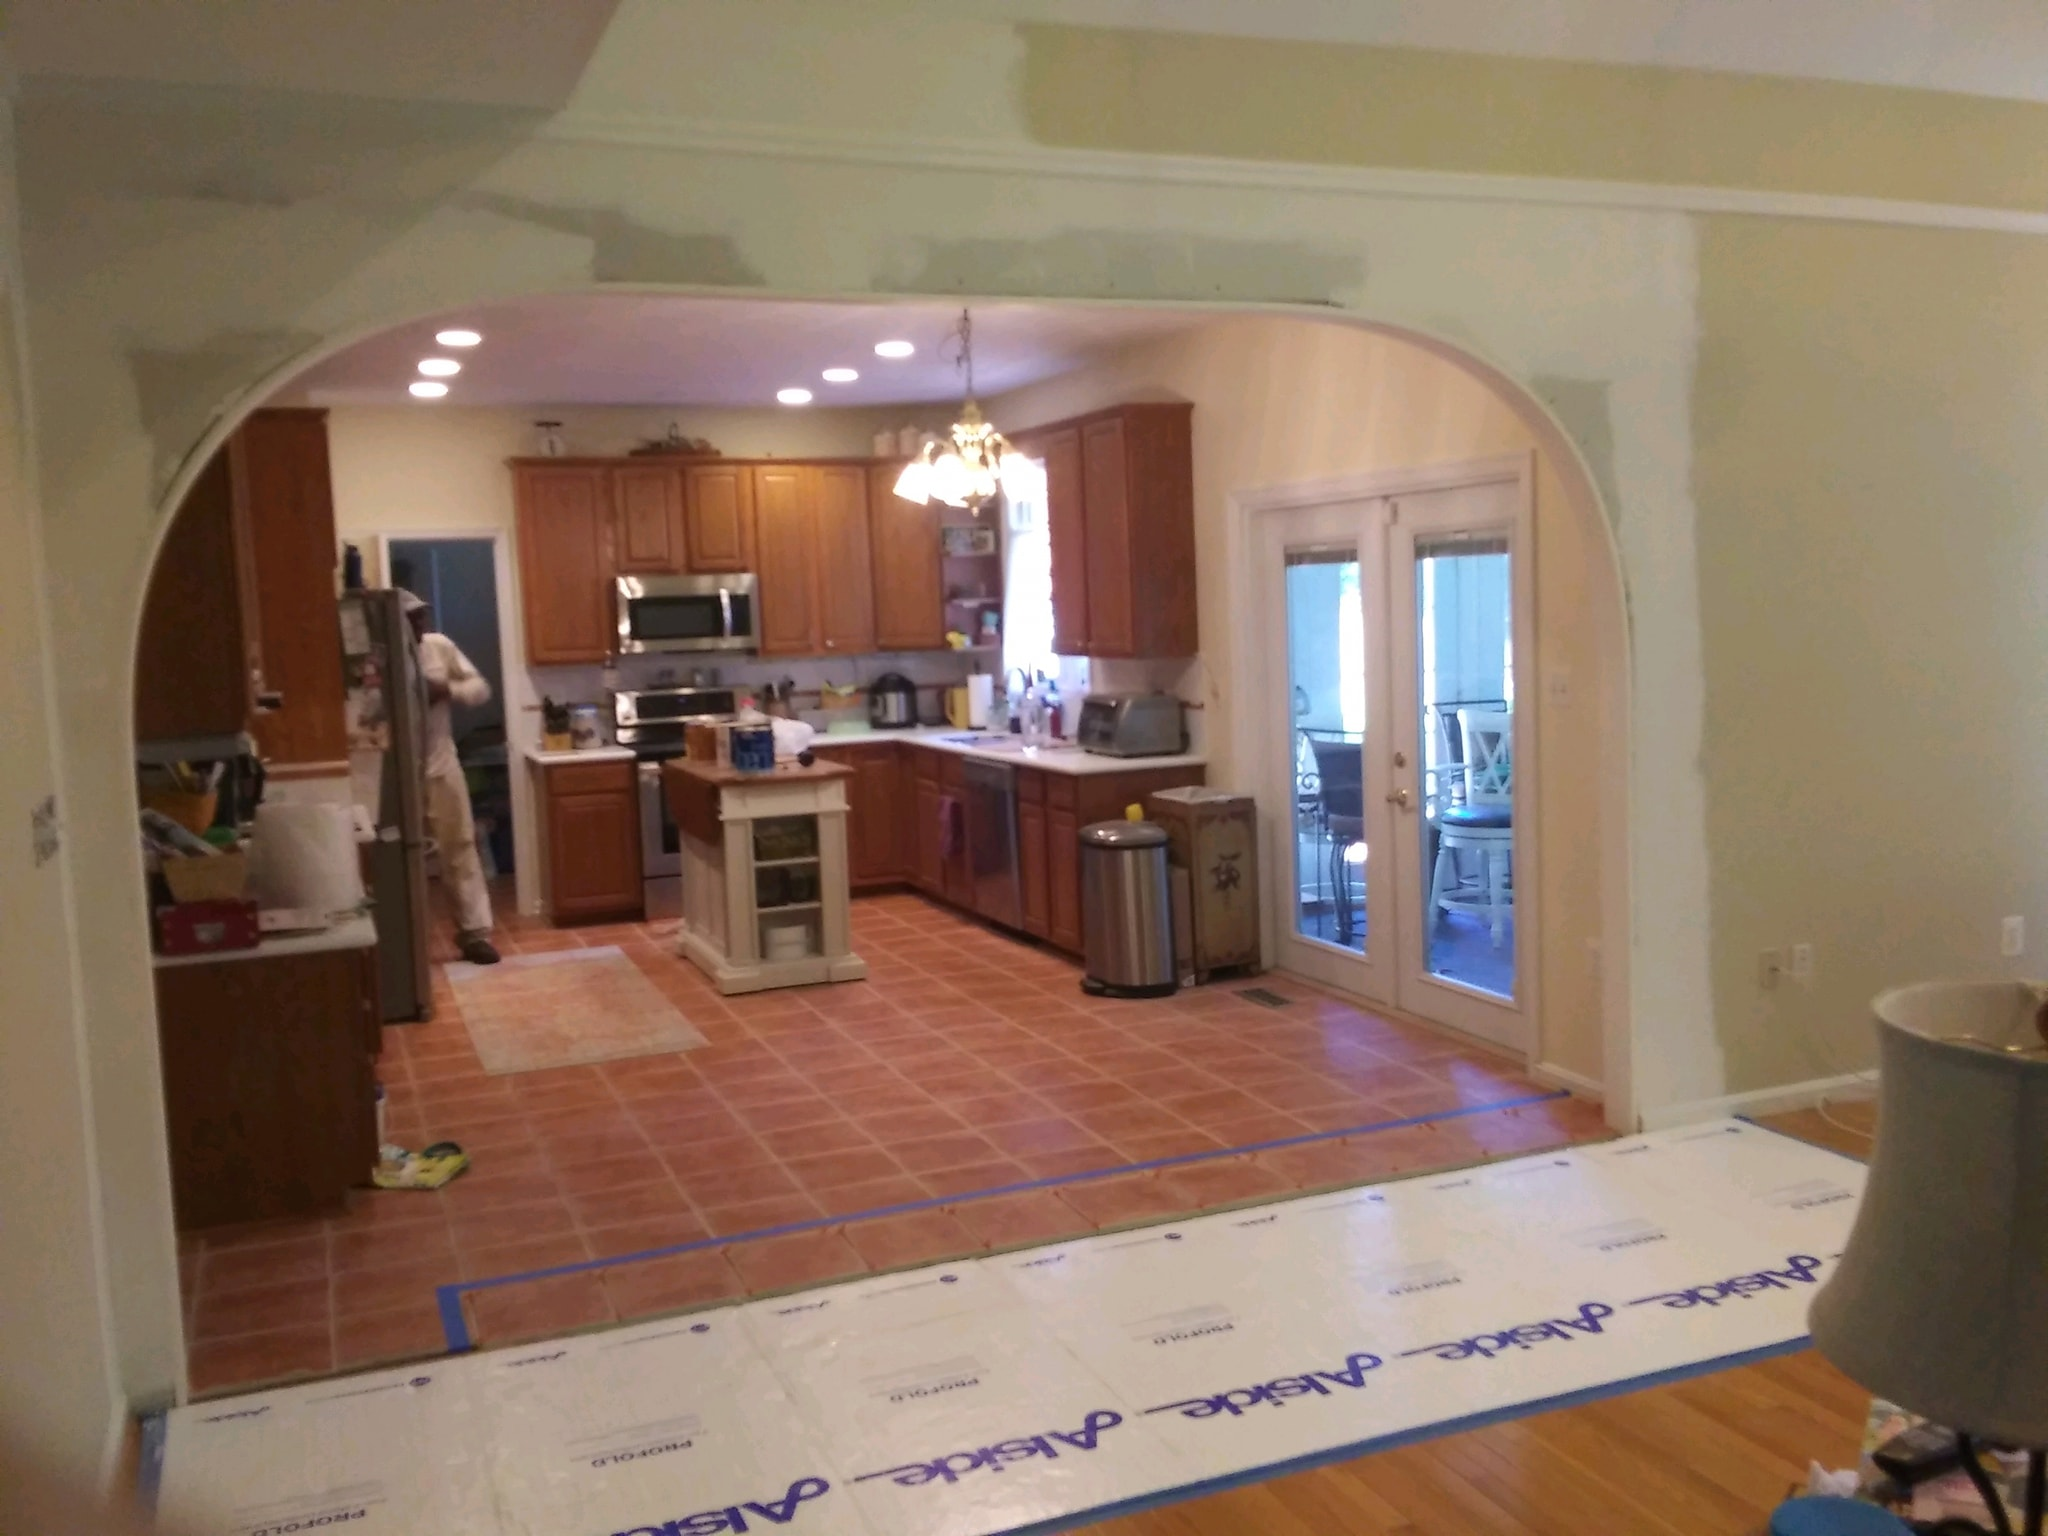 Kitchen and Bath | John Krause Construction | Lusby, MD